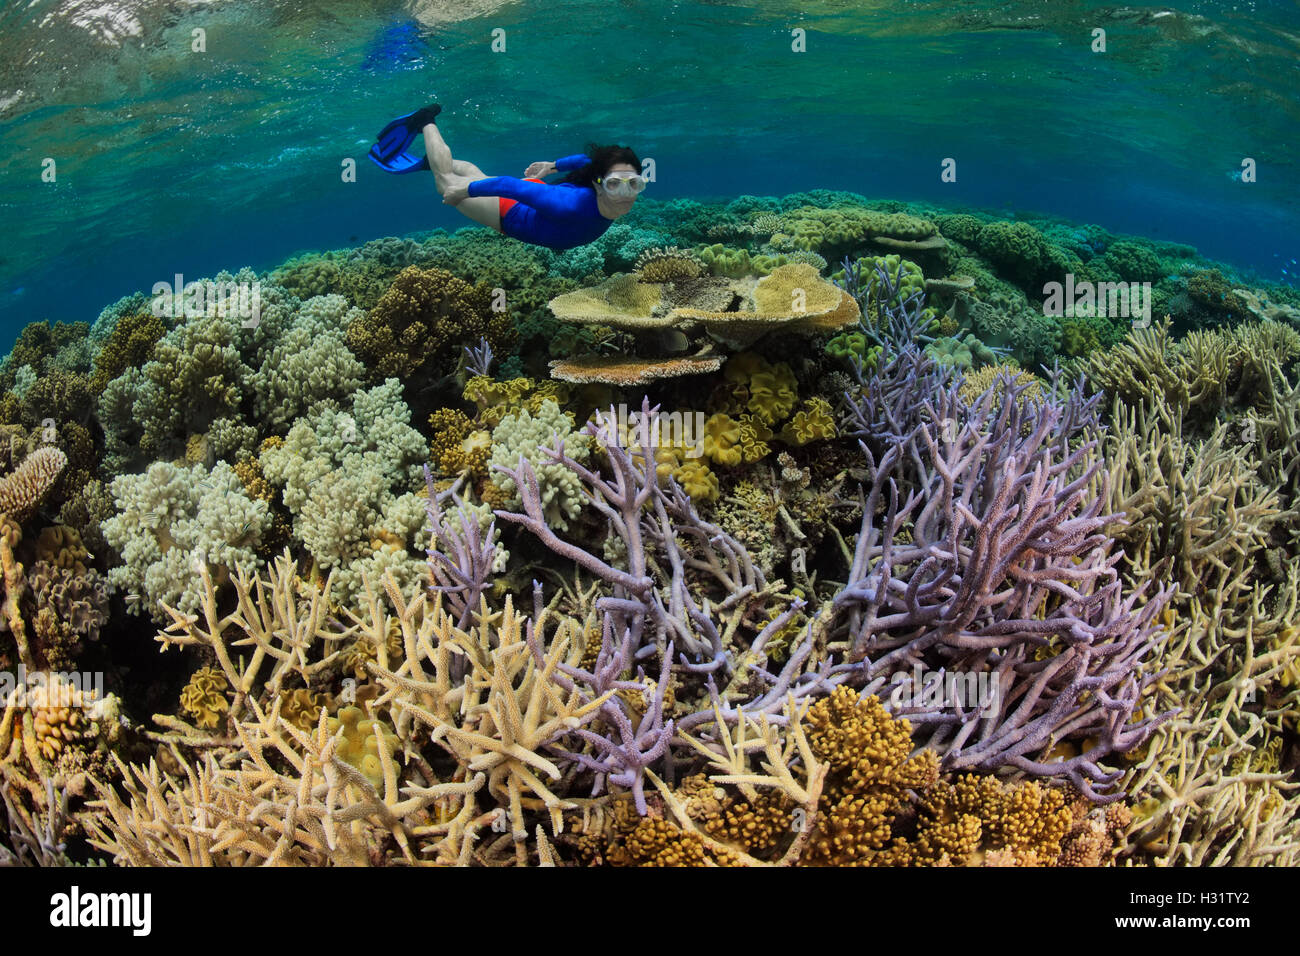 QZ0765-D. Woman (model released) snorkels over hard and soft corals on a healthy coral reef in the Great Barrier Stock Photo